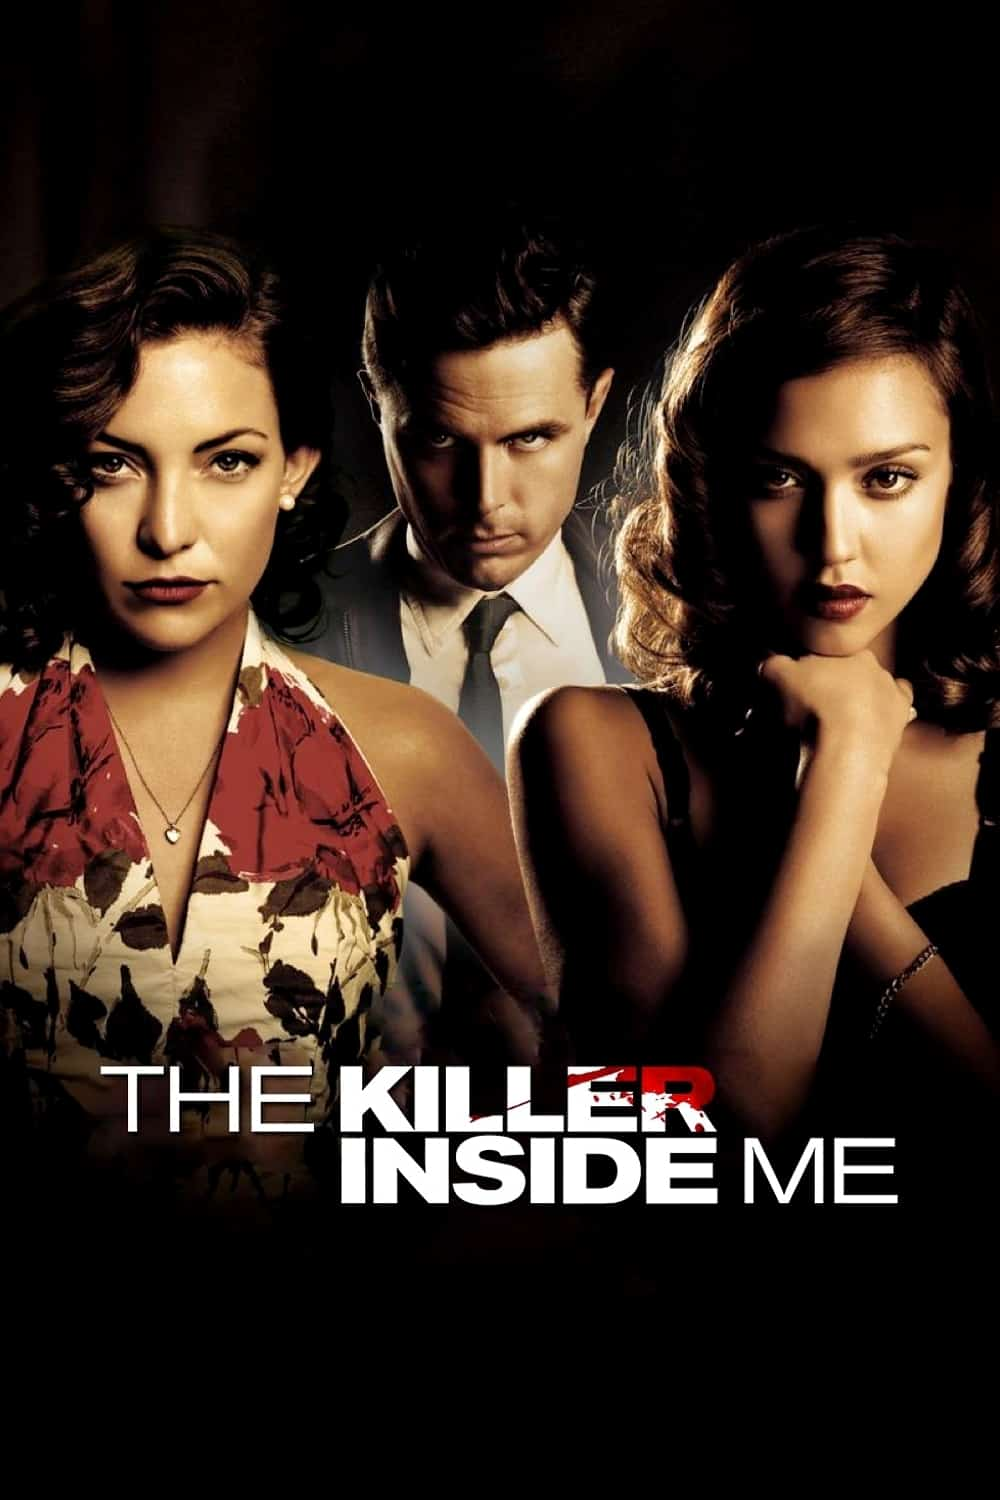 The Killer Inside Me, 2010